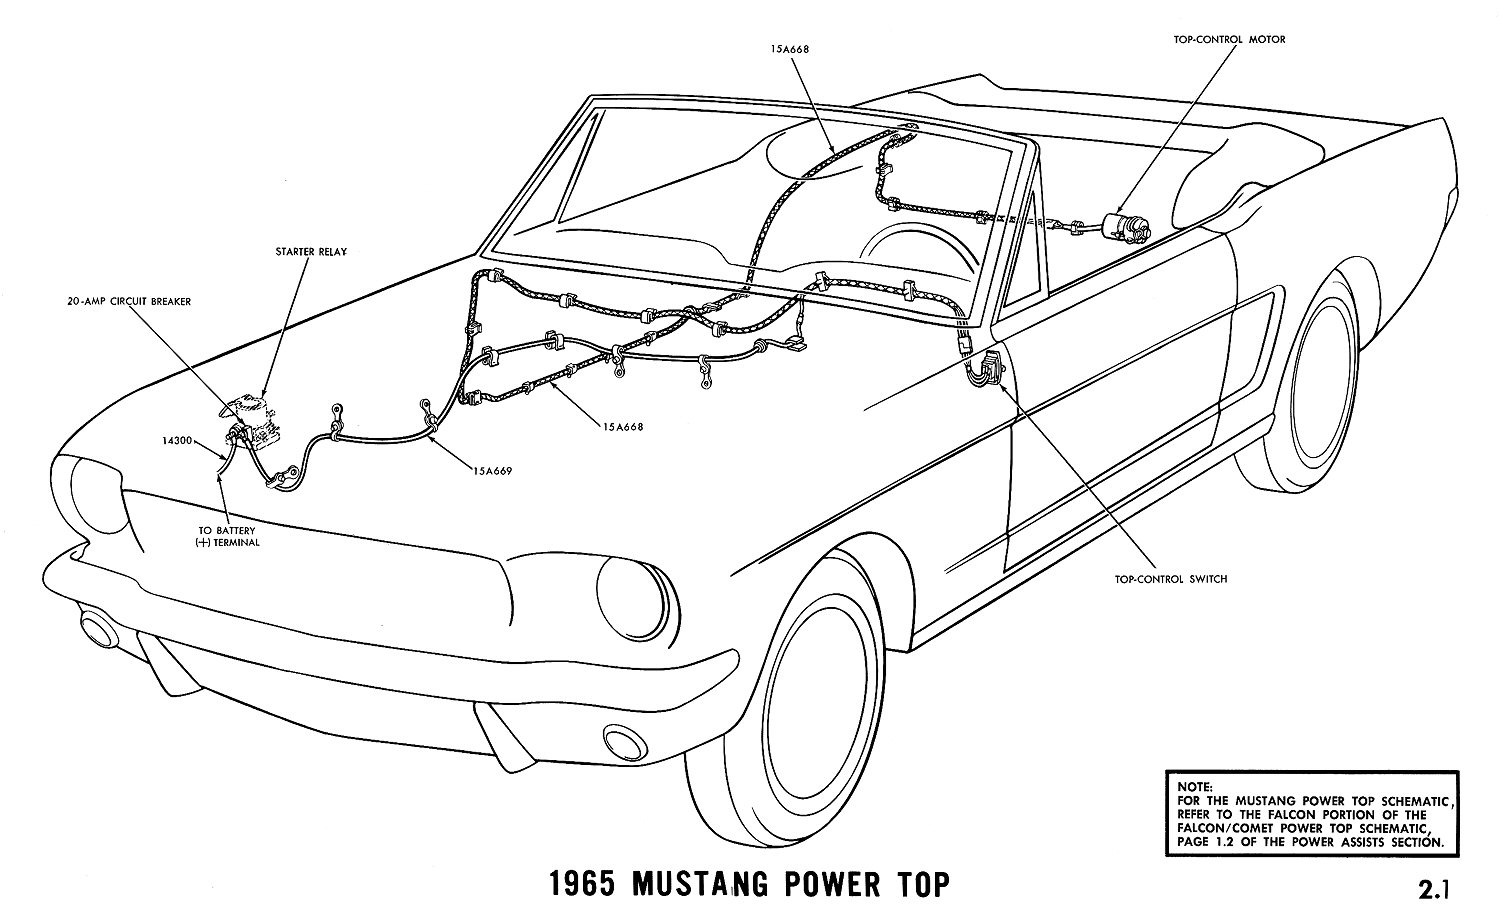 El Ritningar 1968 Mustang Wiring Diagram Radio Audio 1965 Power Top